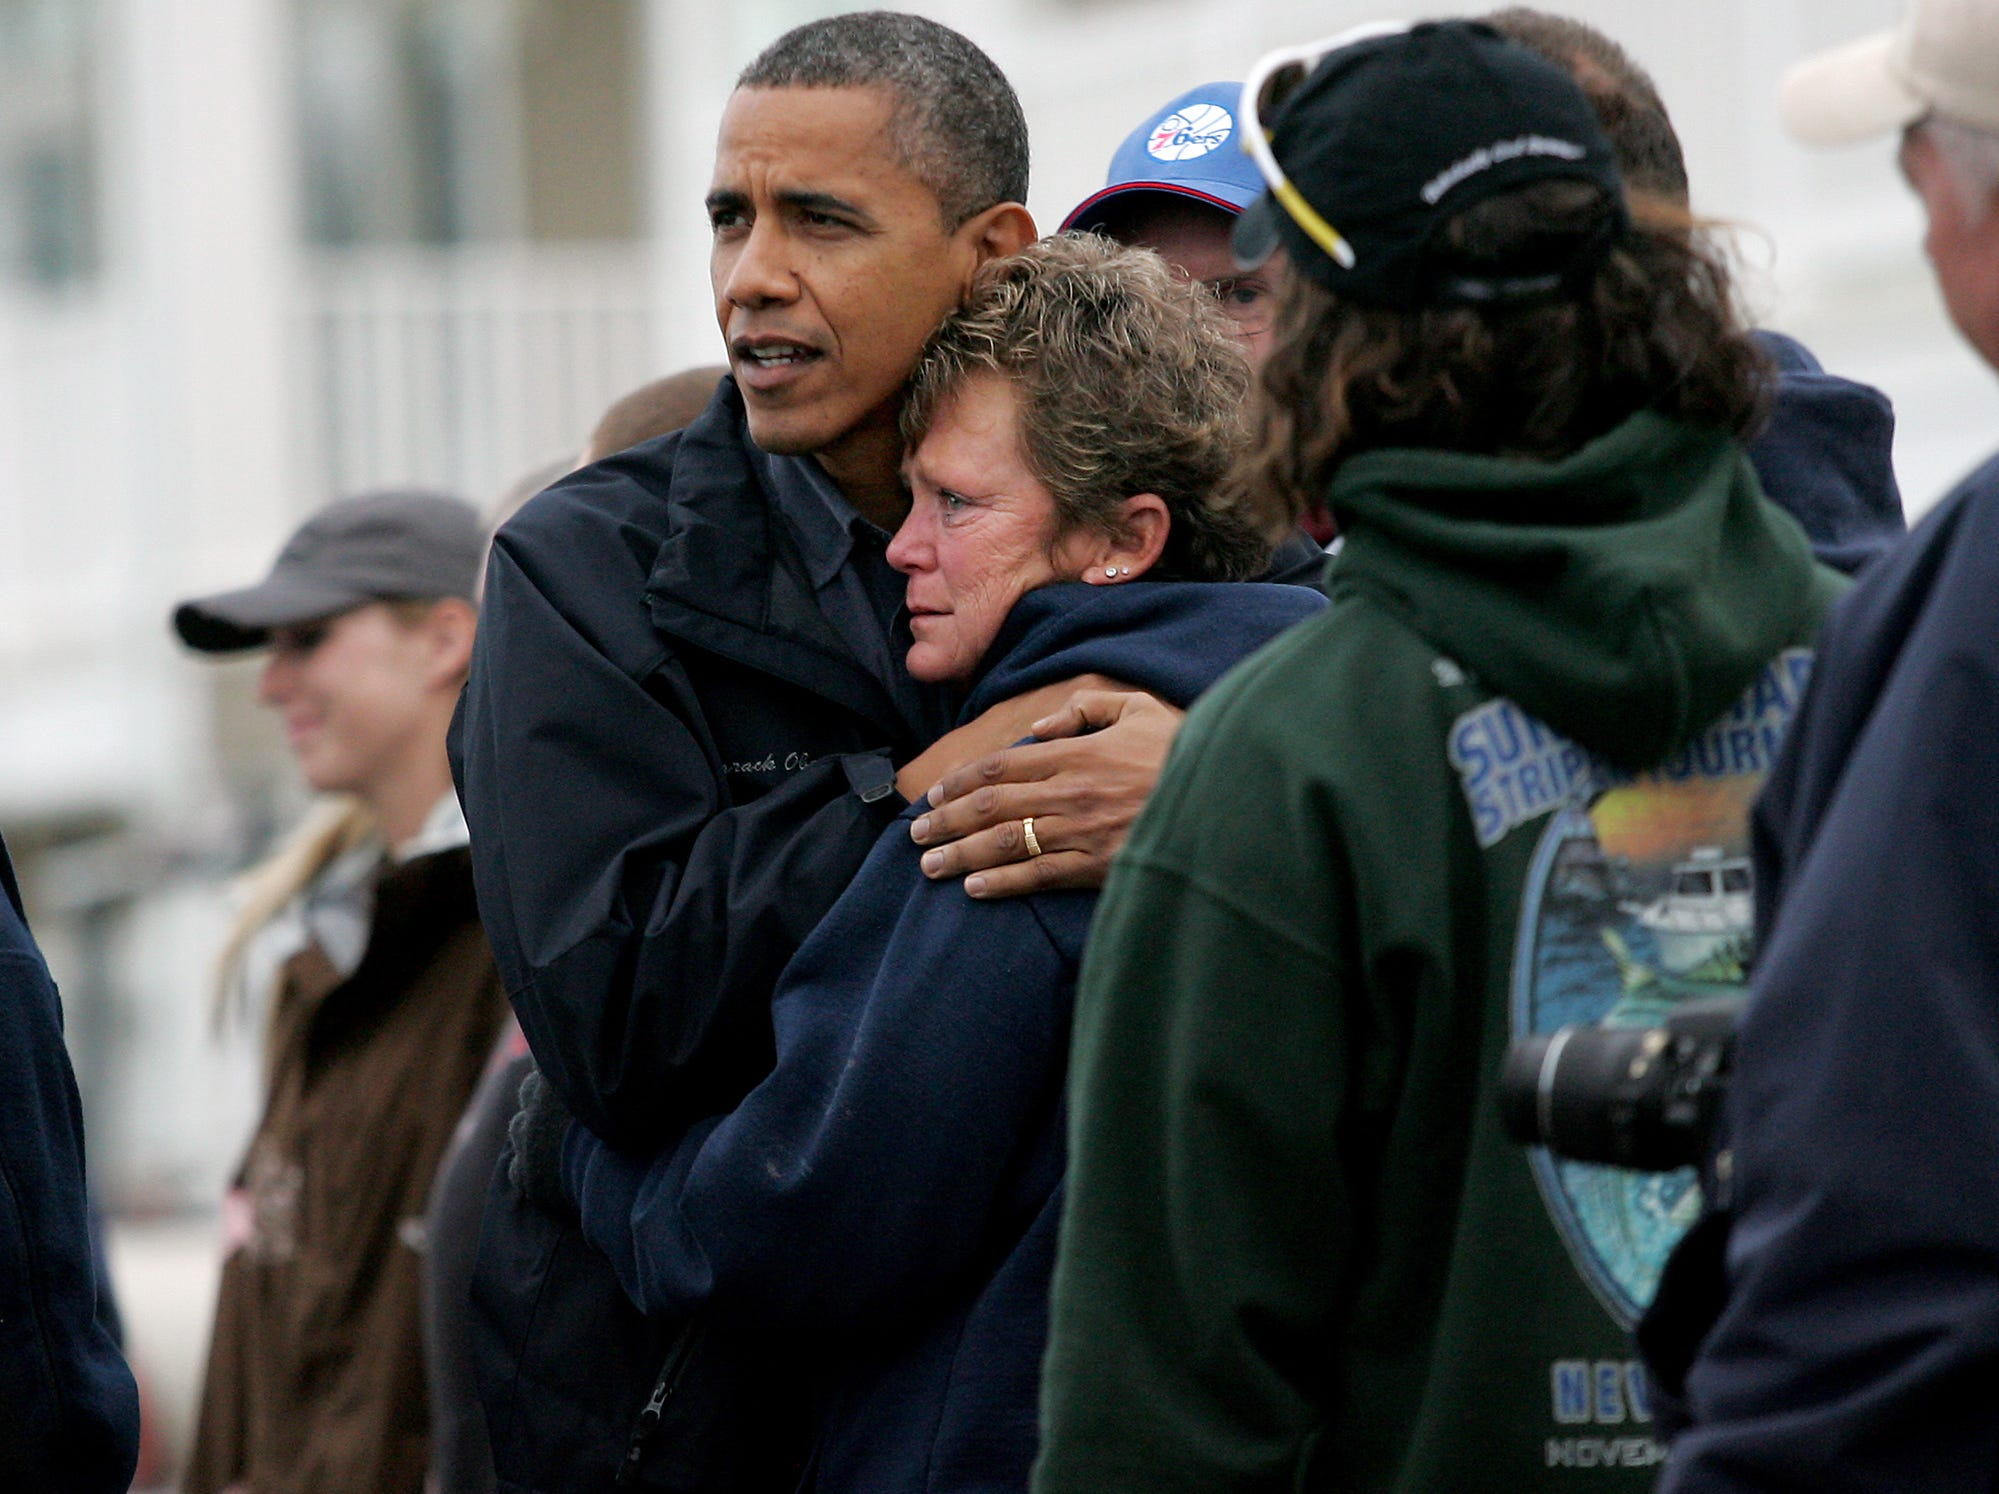 BERGENTINE 10/31/2012 President Obama comforts Donna Vanzant, owner of the North Point Marina on East Shore Dr. in Bergentine.  Boats from the marina ended up in the street after Hurricane Sandy hit New Jersey.  Wednesday, October 31, 2012.